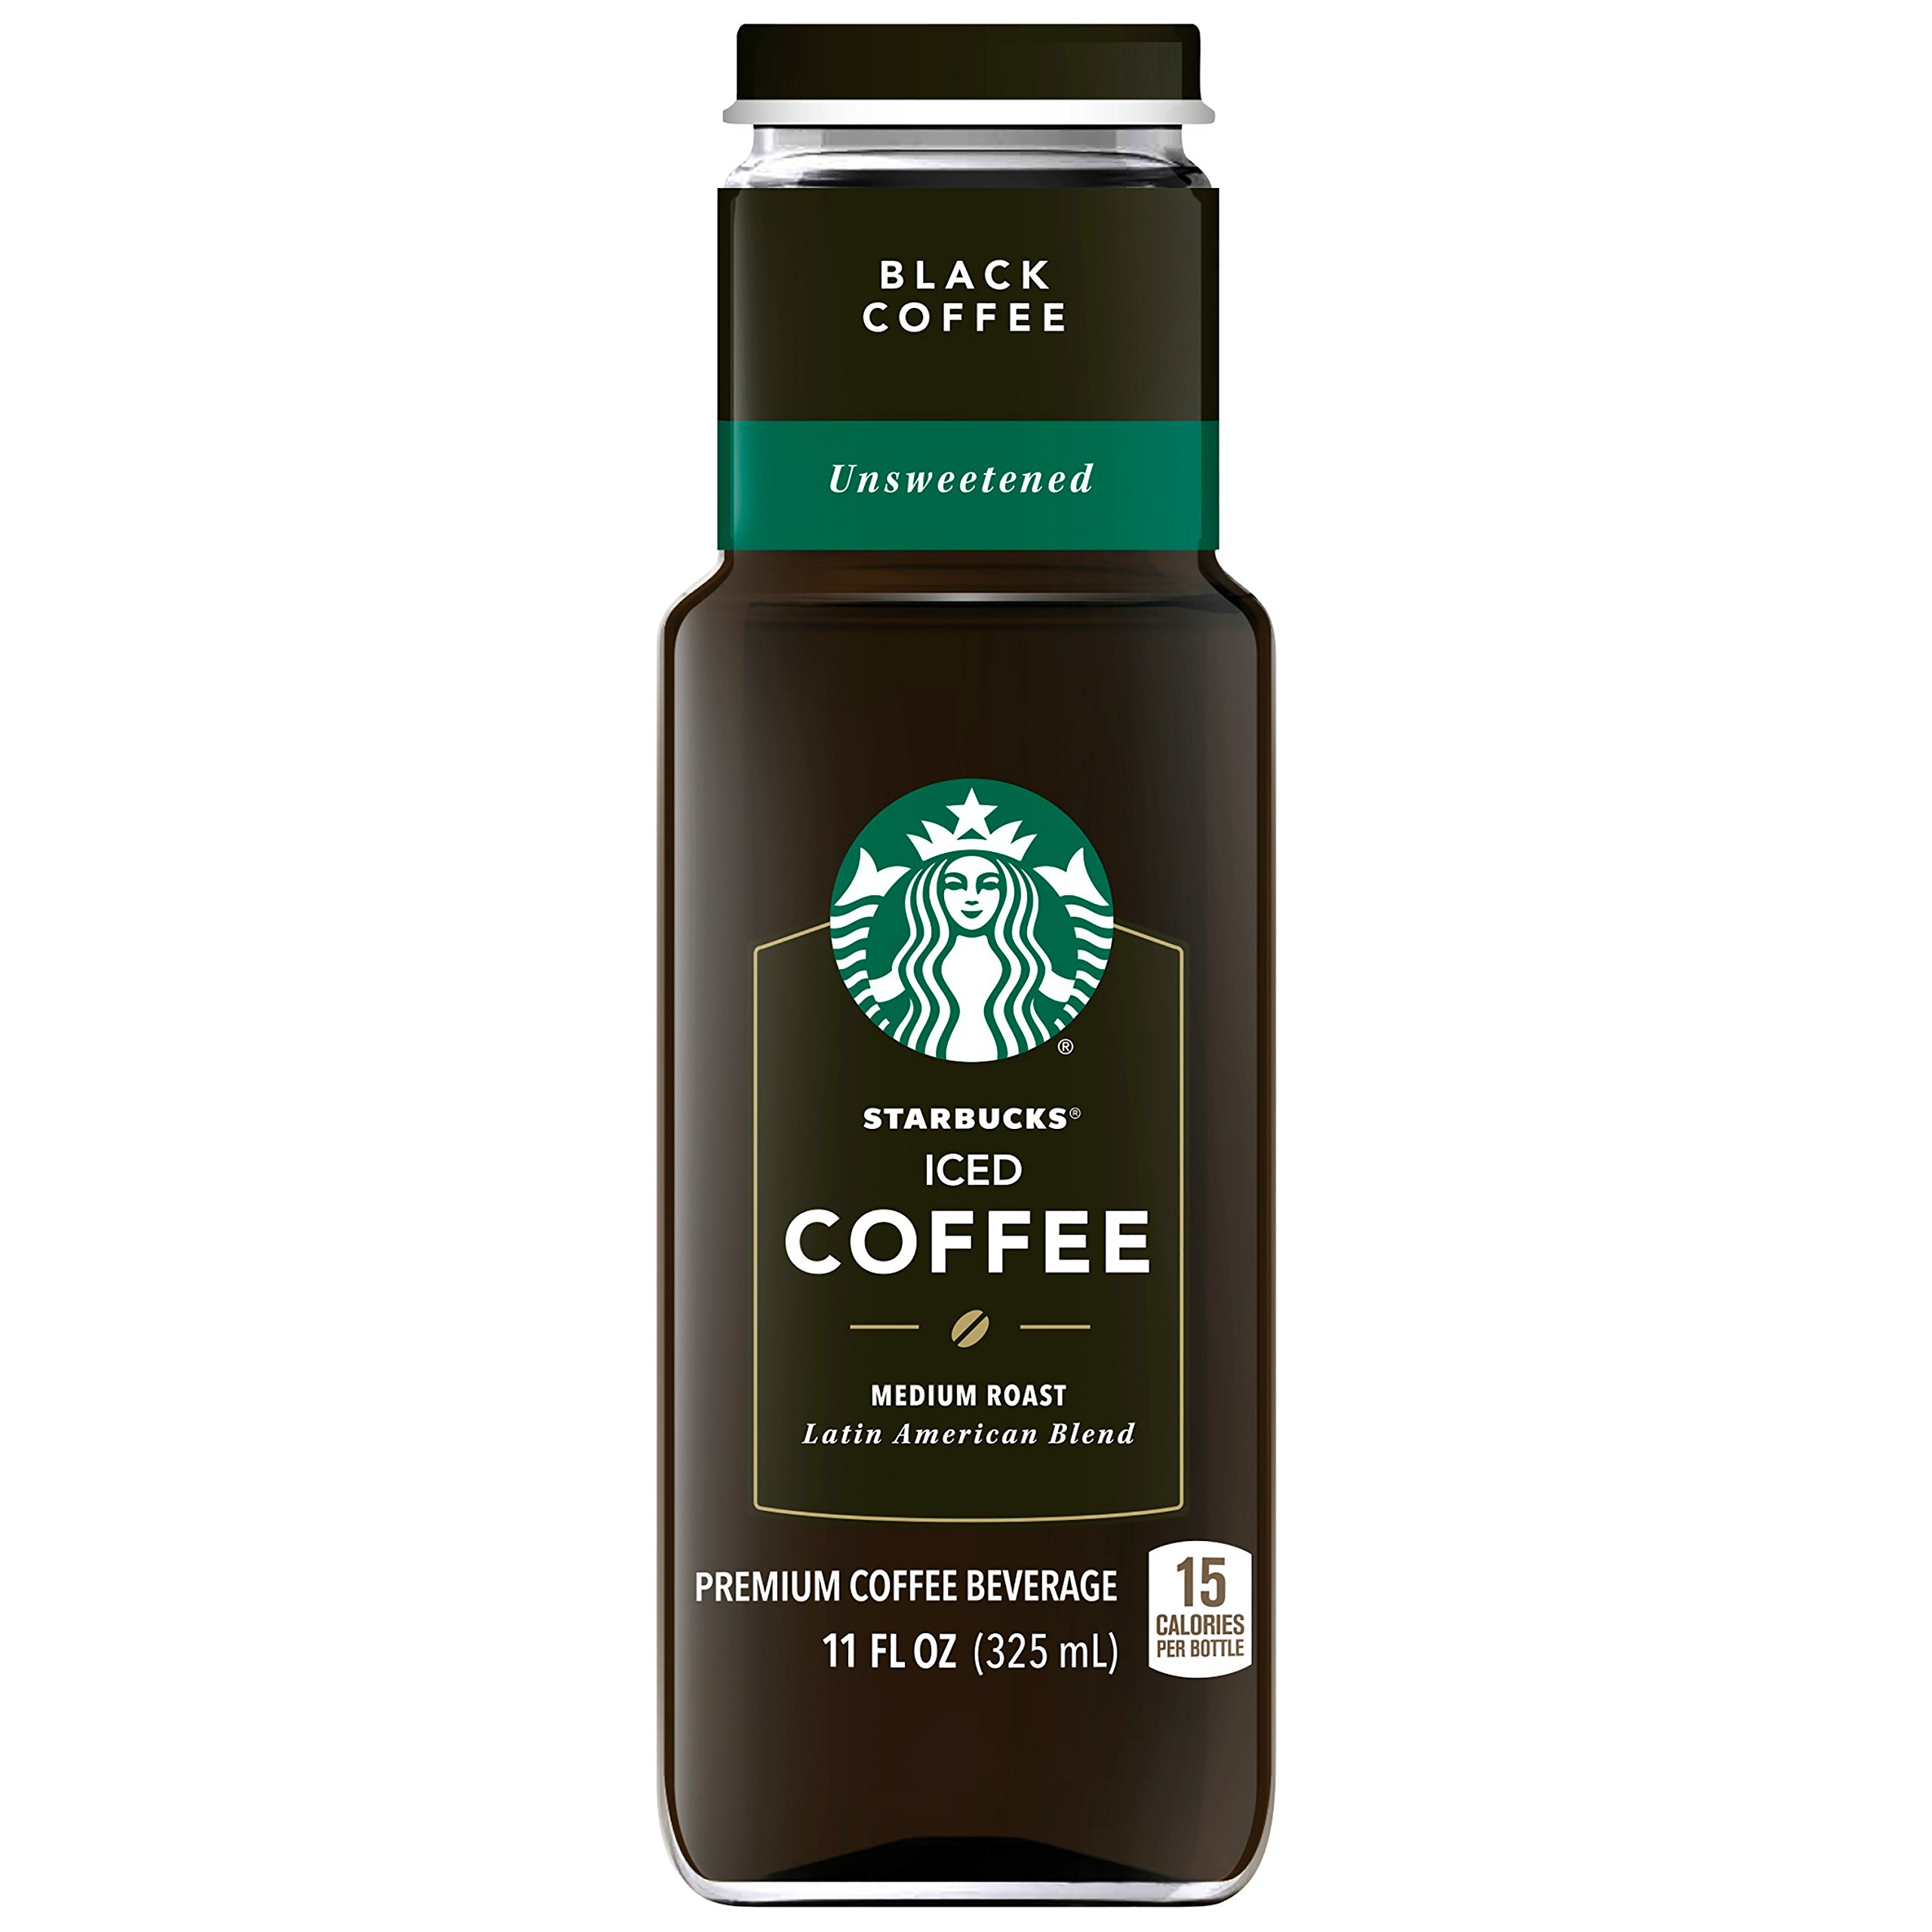 Starbucks Iced Coffee, Black Unsweetened, 11oz Bottle by Starbucks (Image #1)